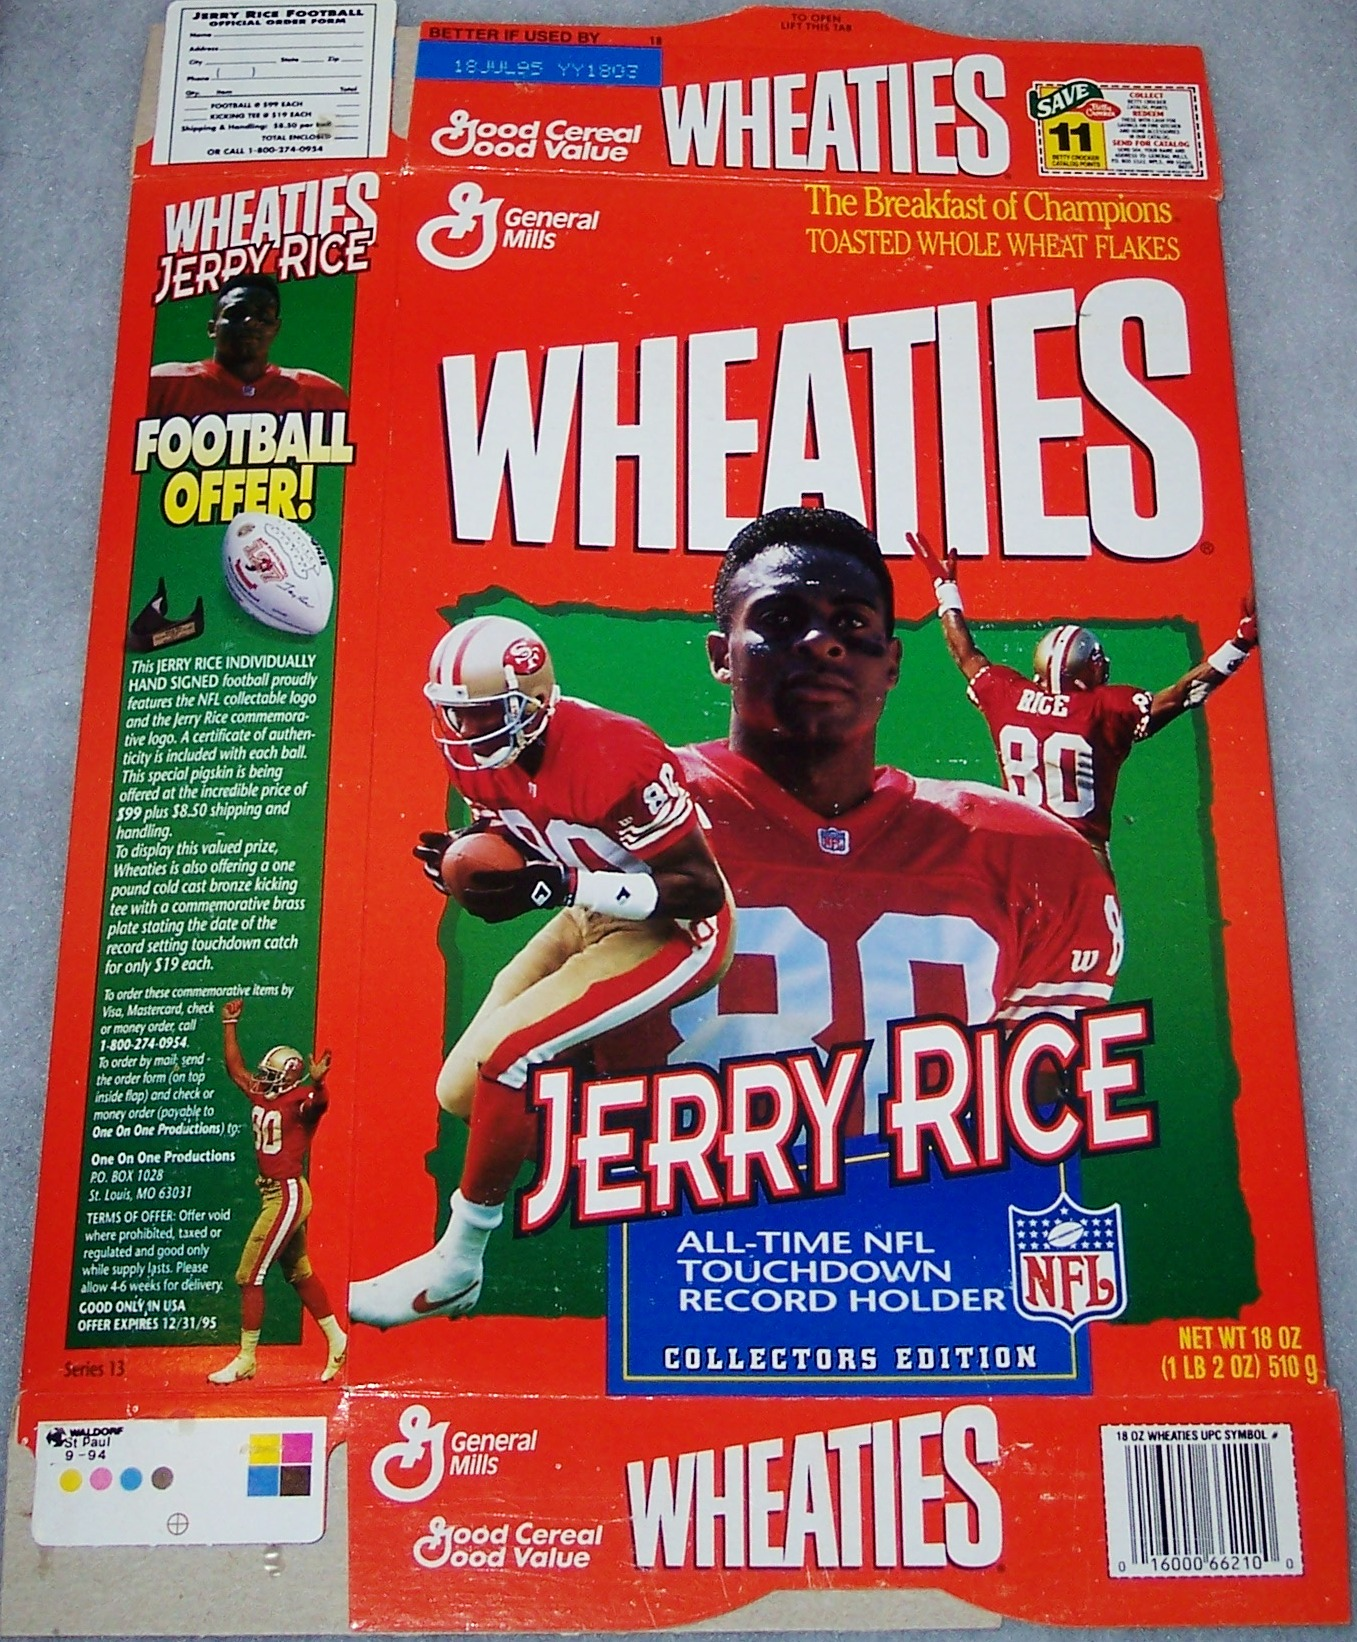 b2a45aa1f 1995 Jerry Rice- All Time NFL Touchdown Record Holder